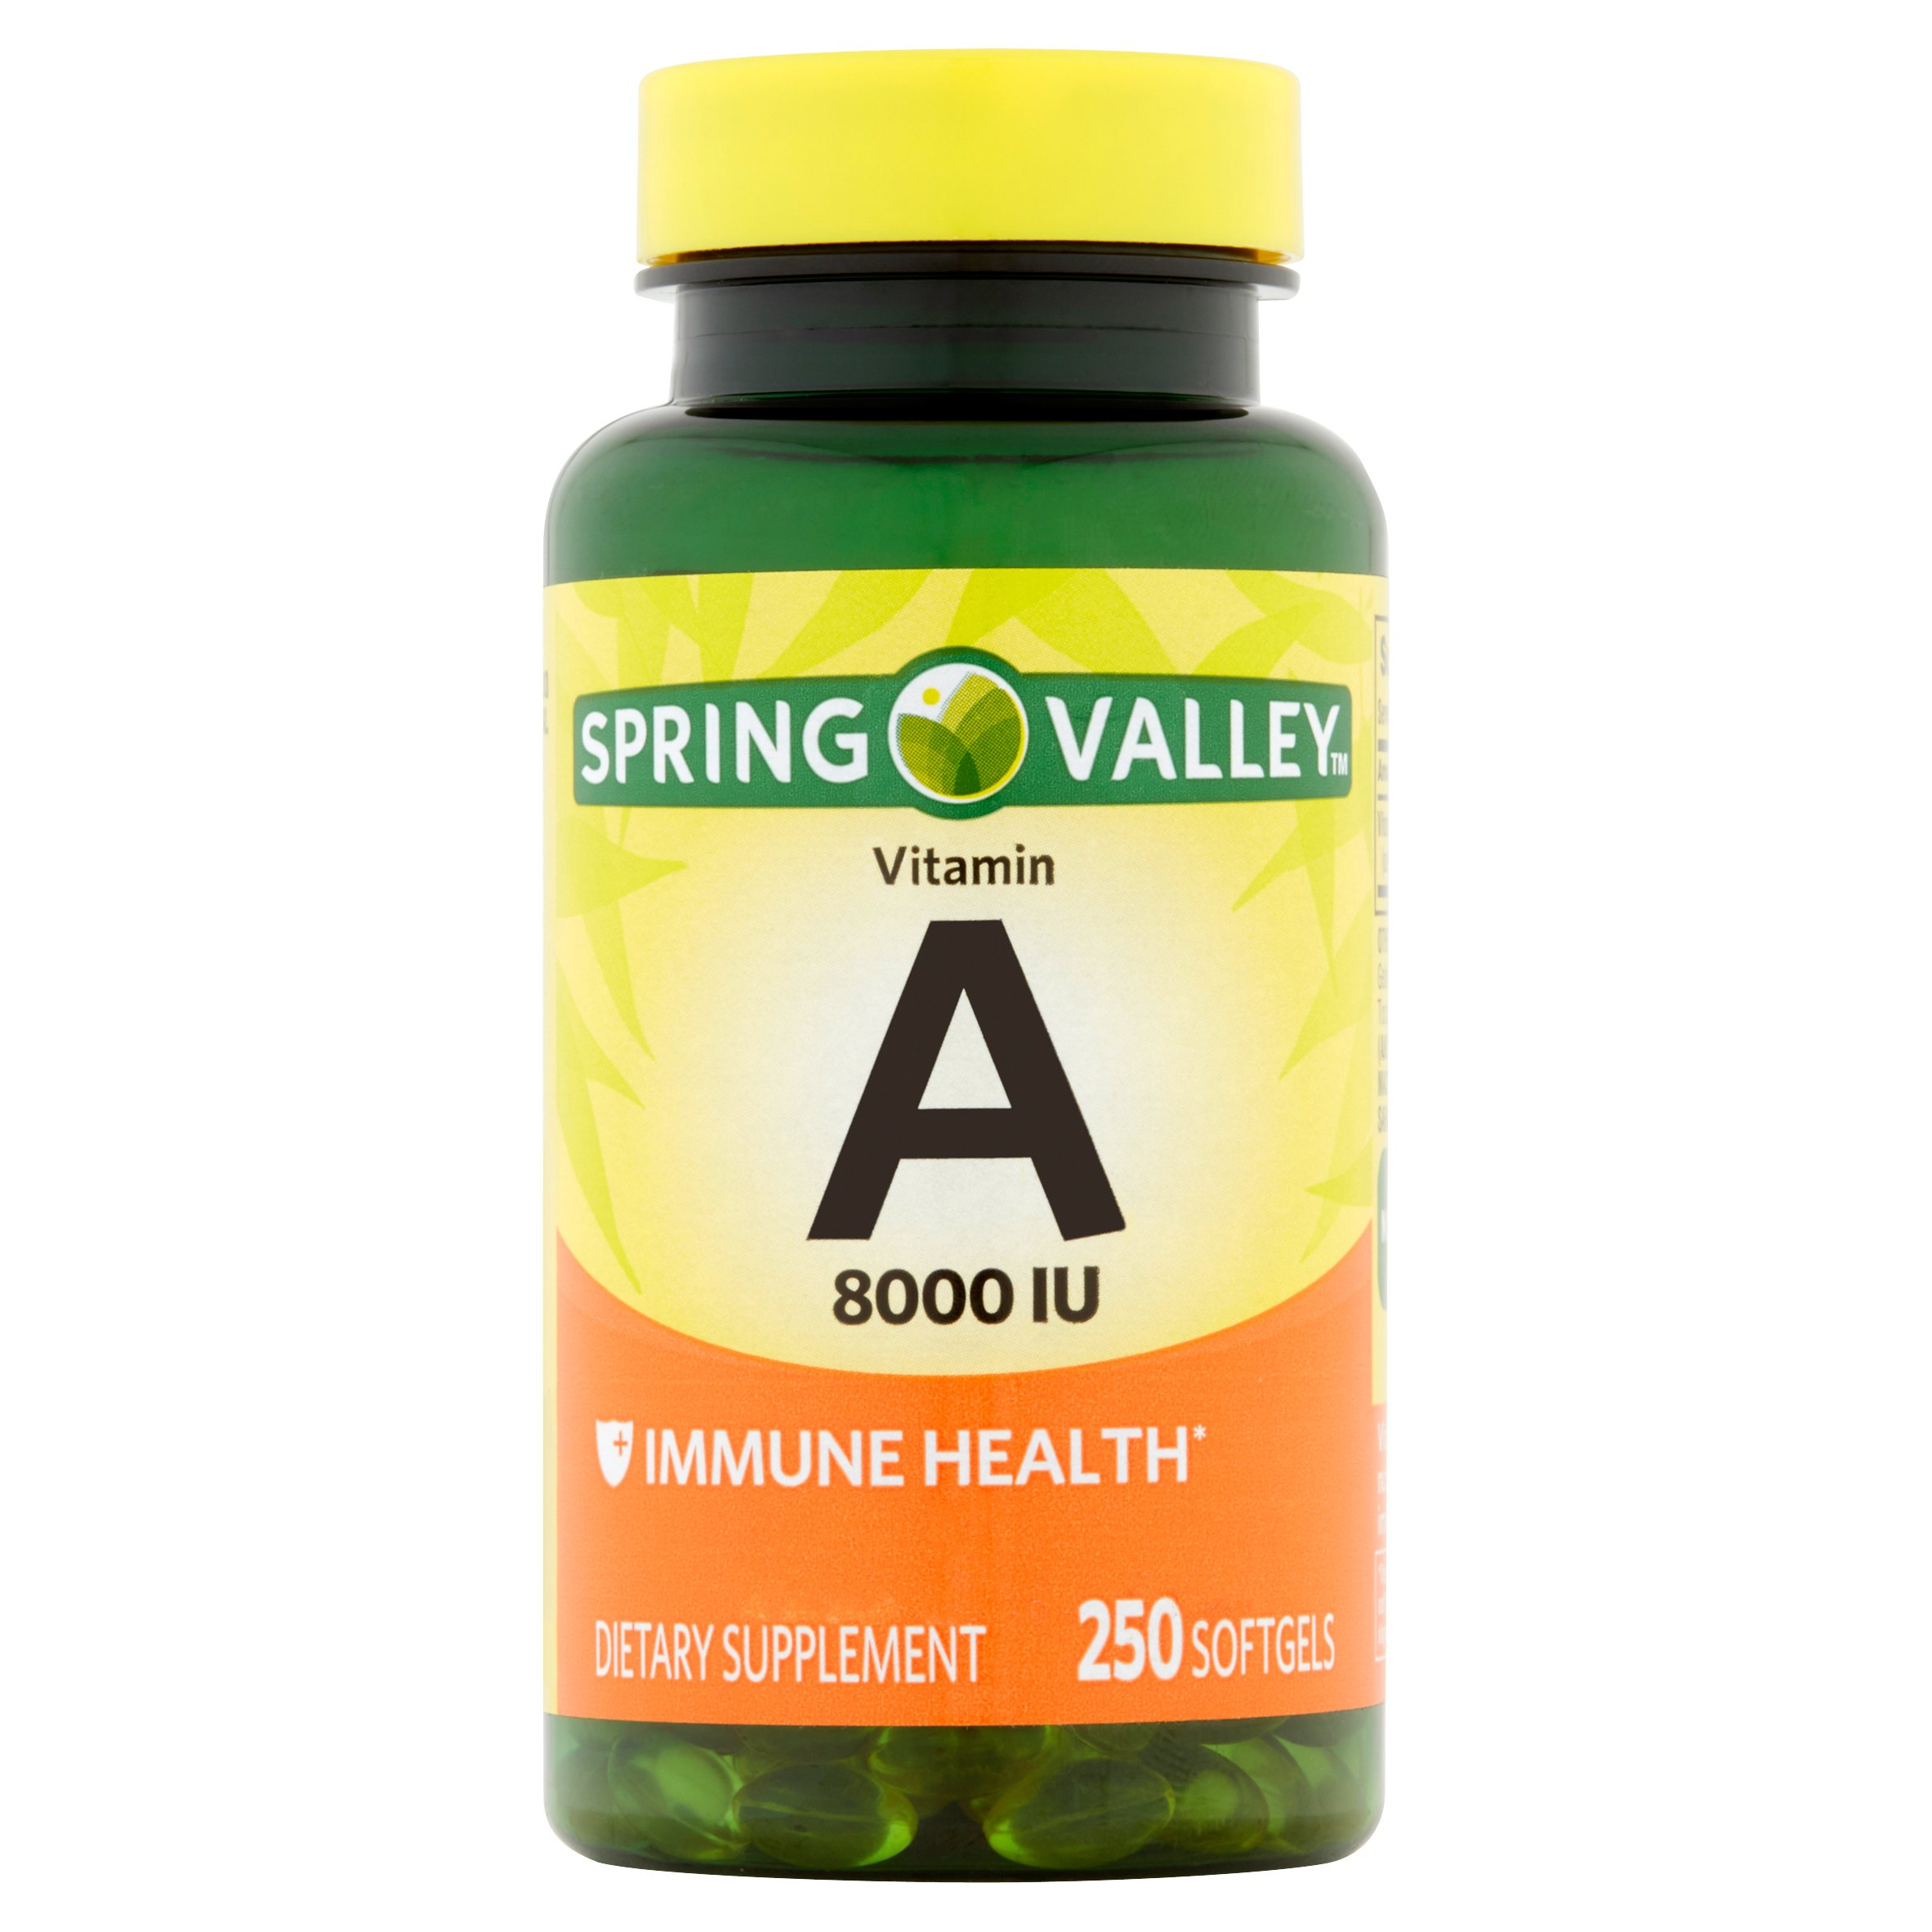 Spring Valley Vitamin A Softgels, 8000 IU, 250 Ct